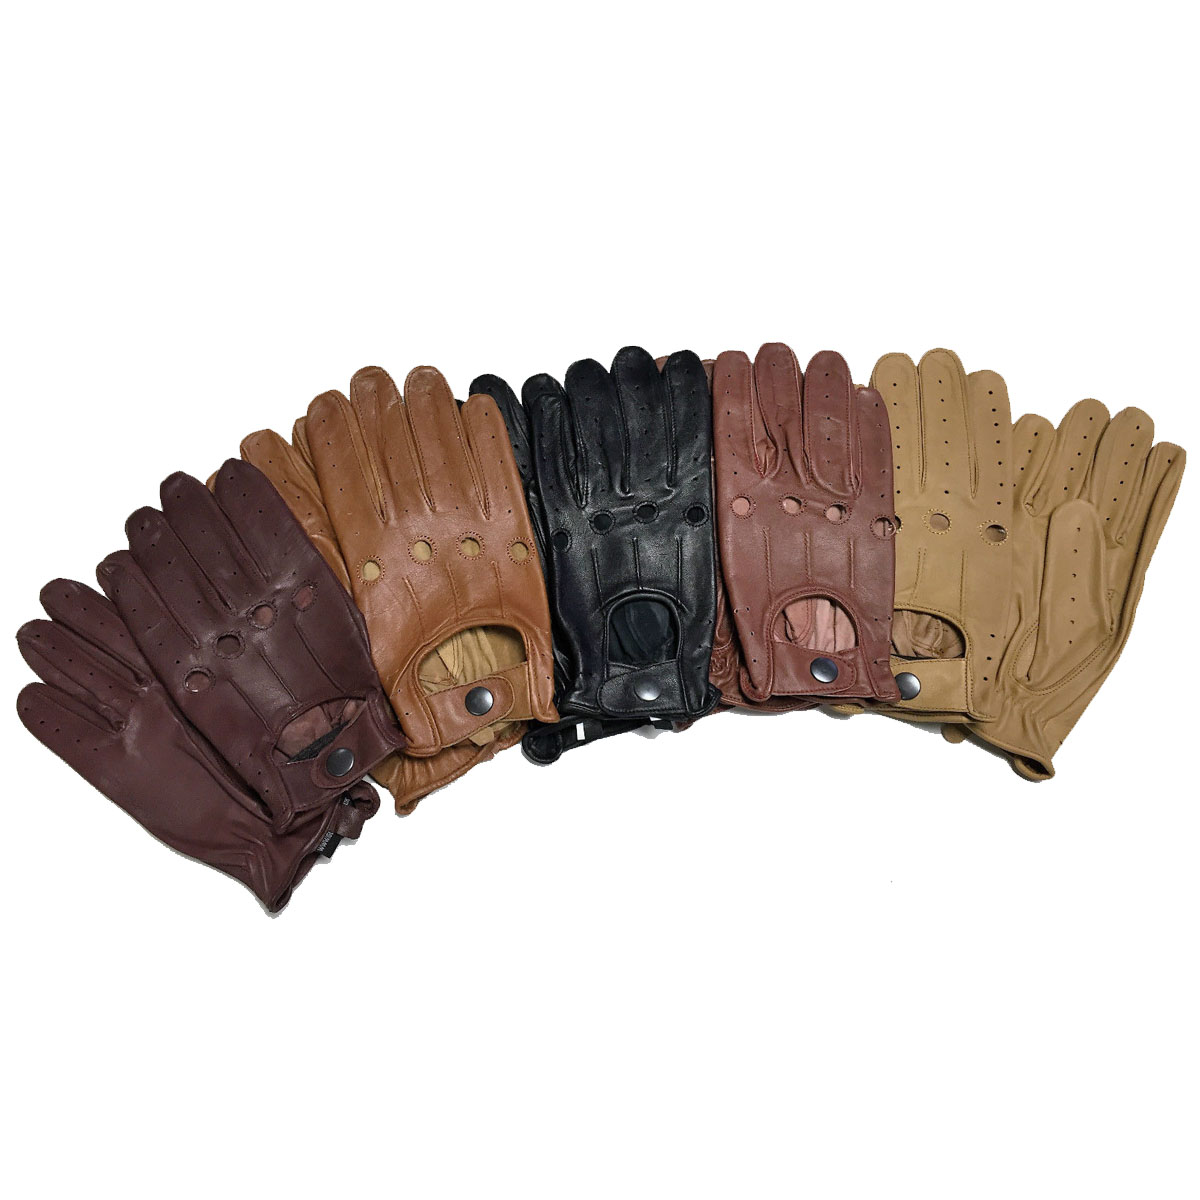 Dam Leather Weight Lifting Gym Gloves Real Leather Women S: GENUINE LAMSBSKIN SOFT LEATHER SKIN FIT DRIVING GLOVES